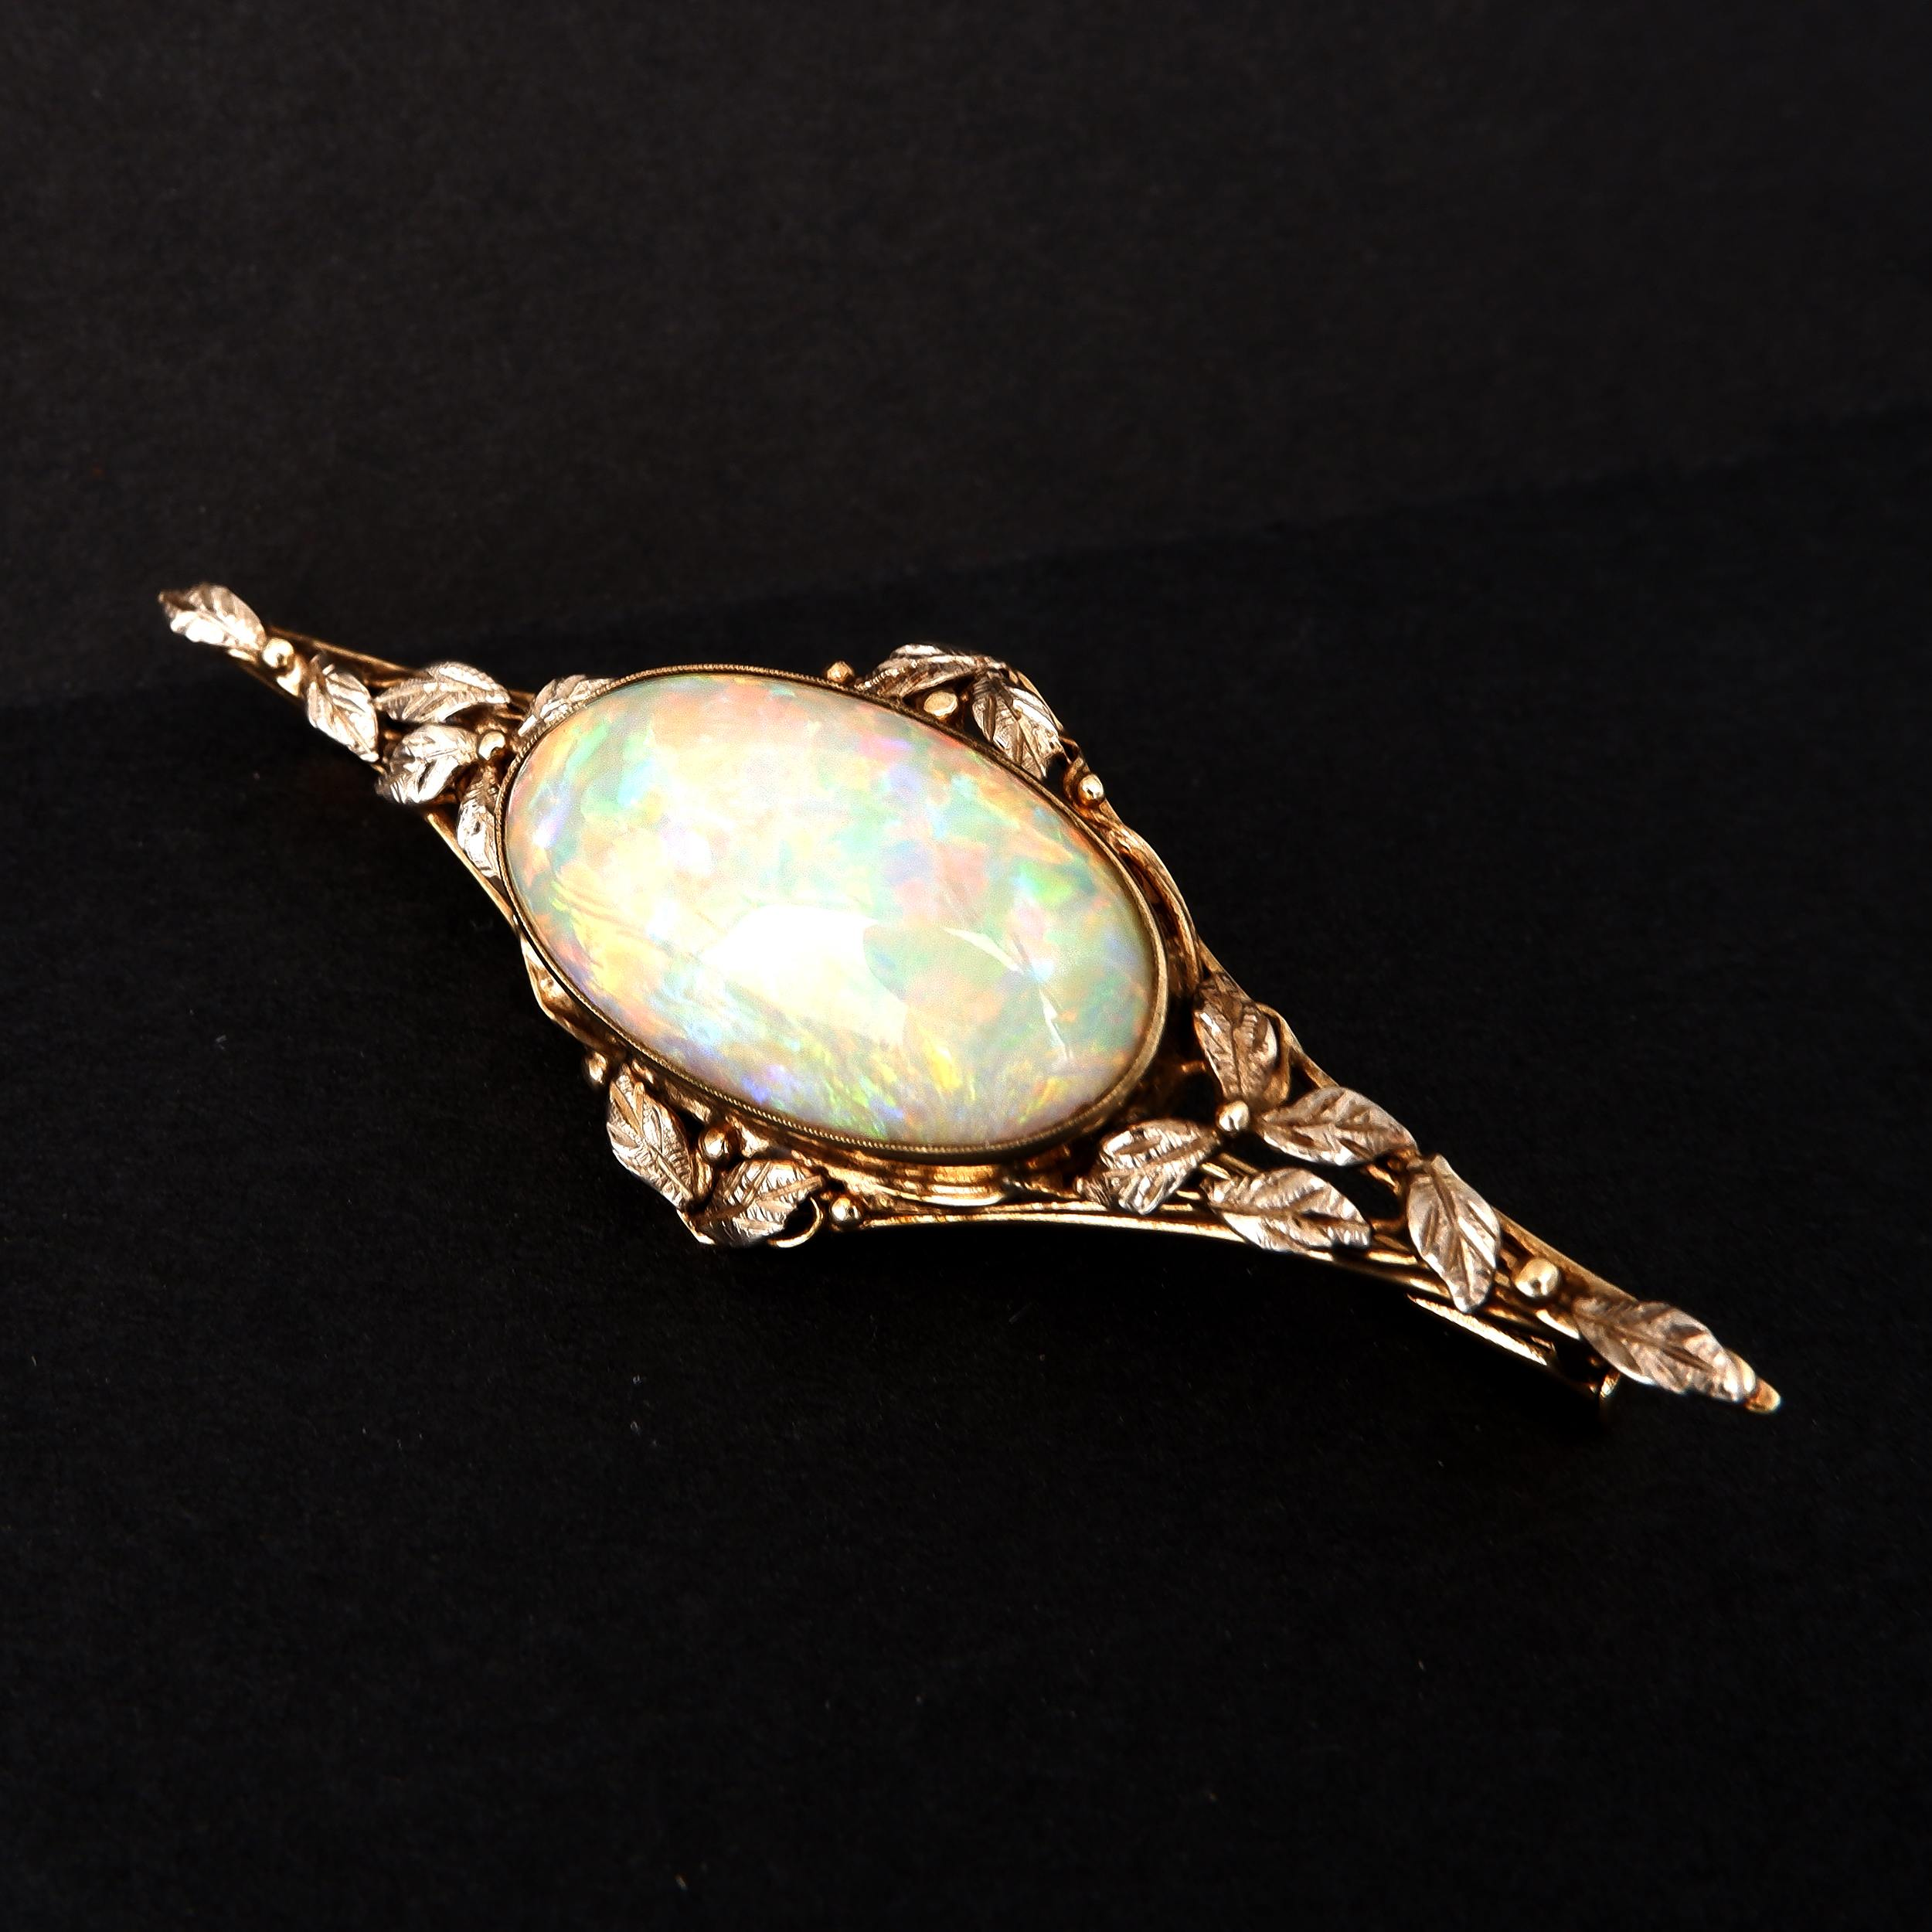 'Antique 18ct Yellow and White Gold Brooch With Sold Cabochon of Opal with Green, Blue and Orange Flash, 8.50ct'